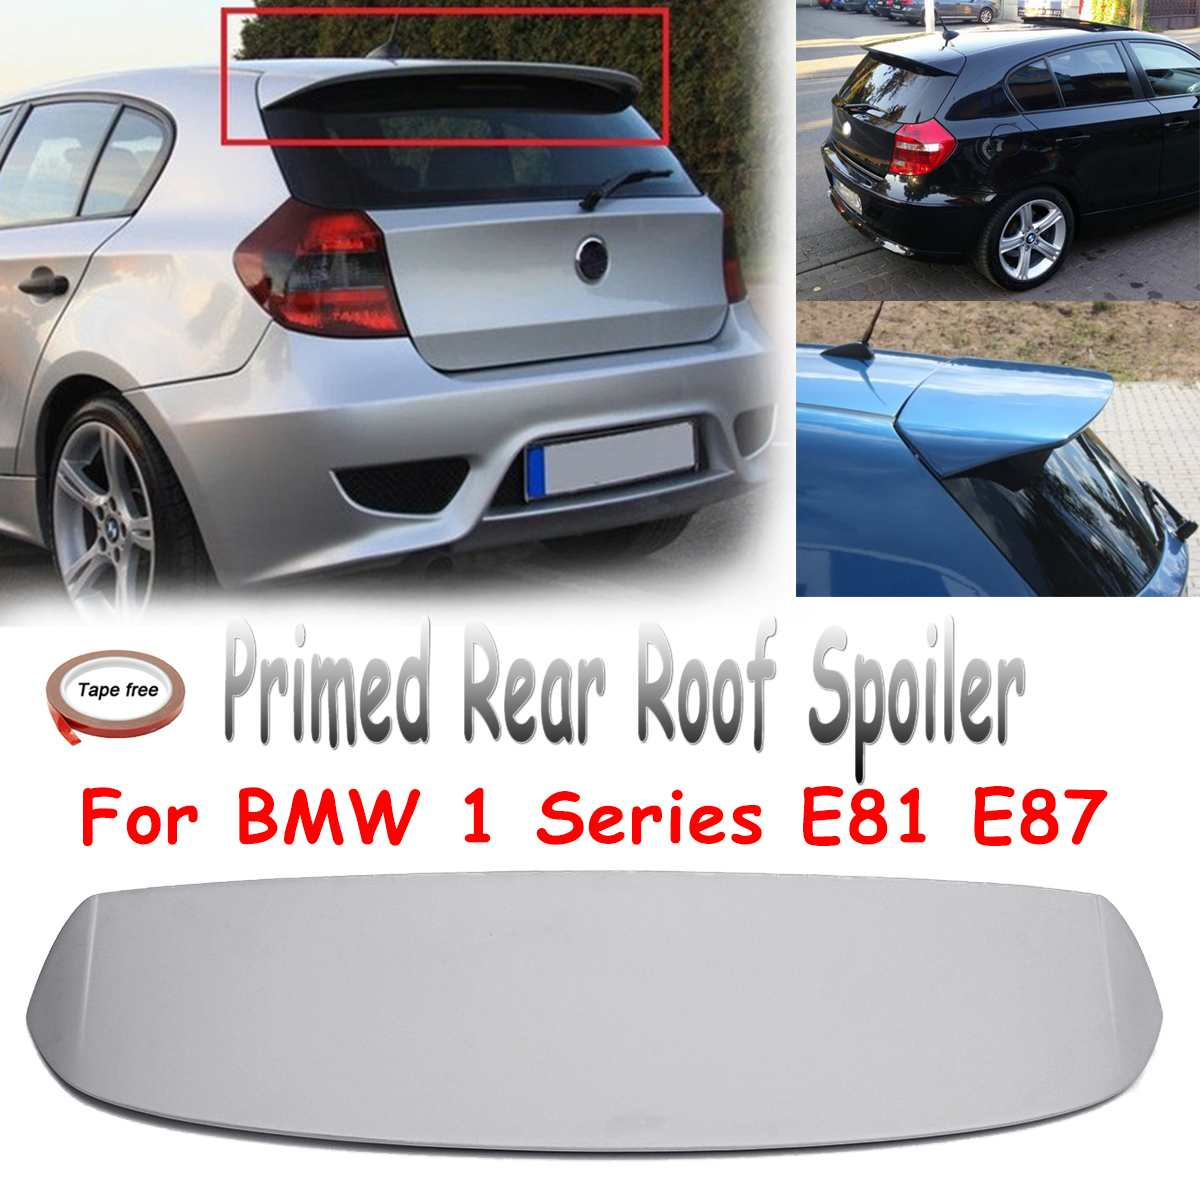 Unpainted Primed Rear Trunk Roof Lip Trunk Spoiler Fiberglass Wing Fits for BMW 1 Series E81 E87 FRP